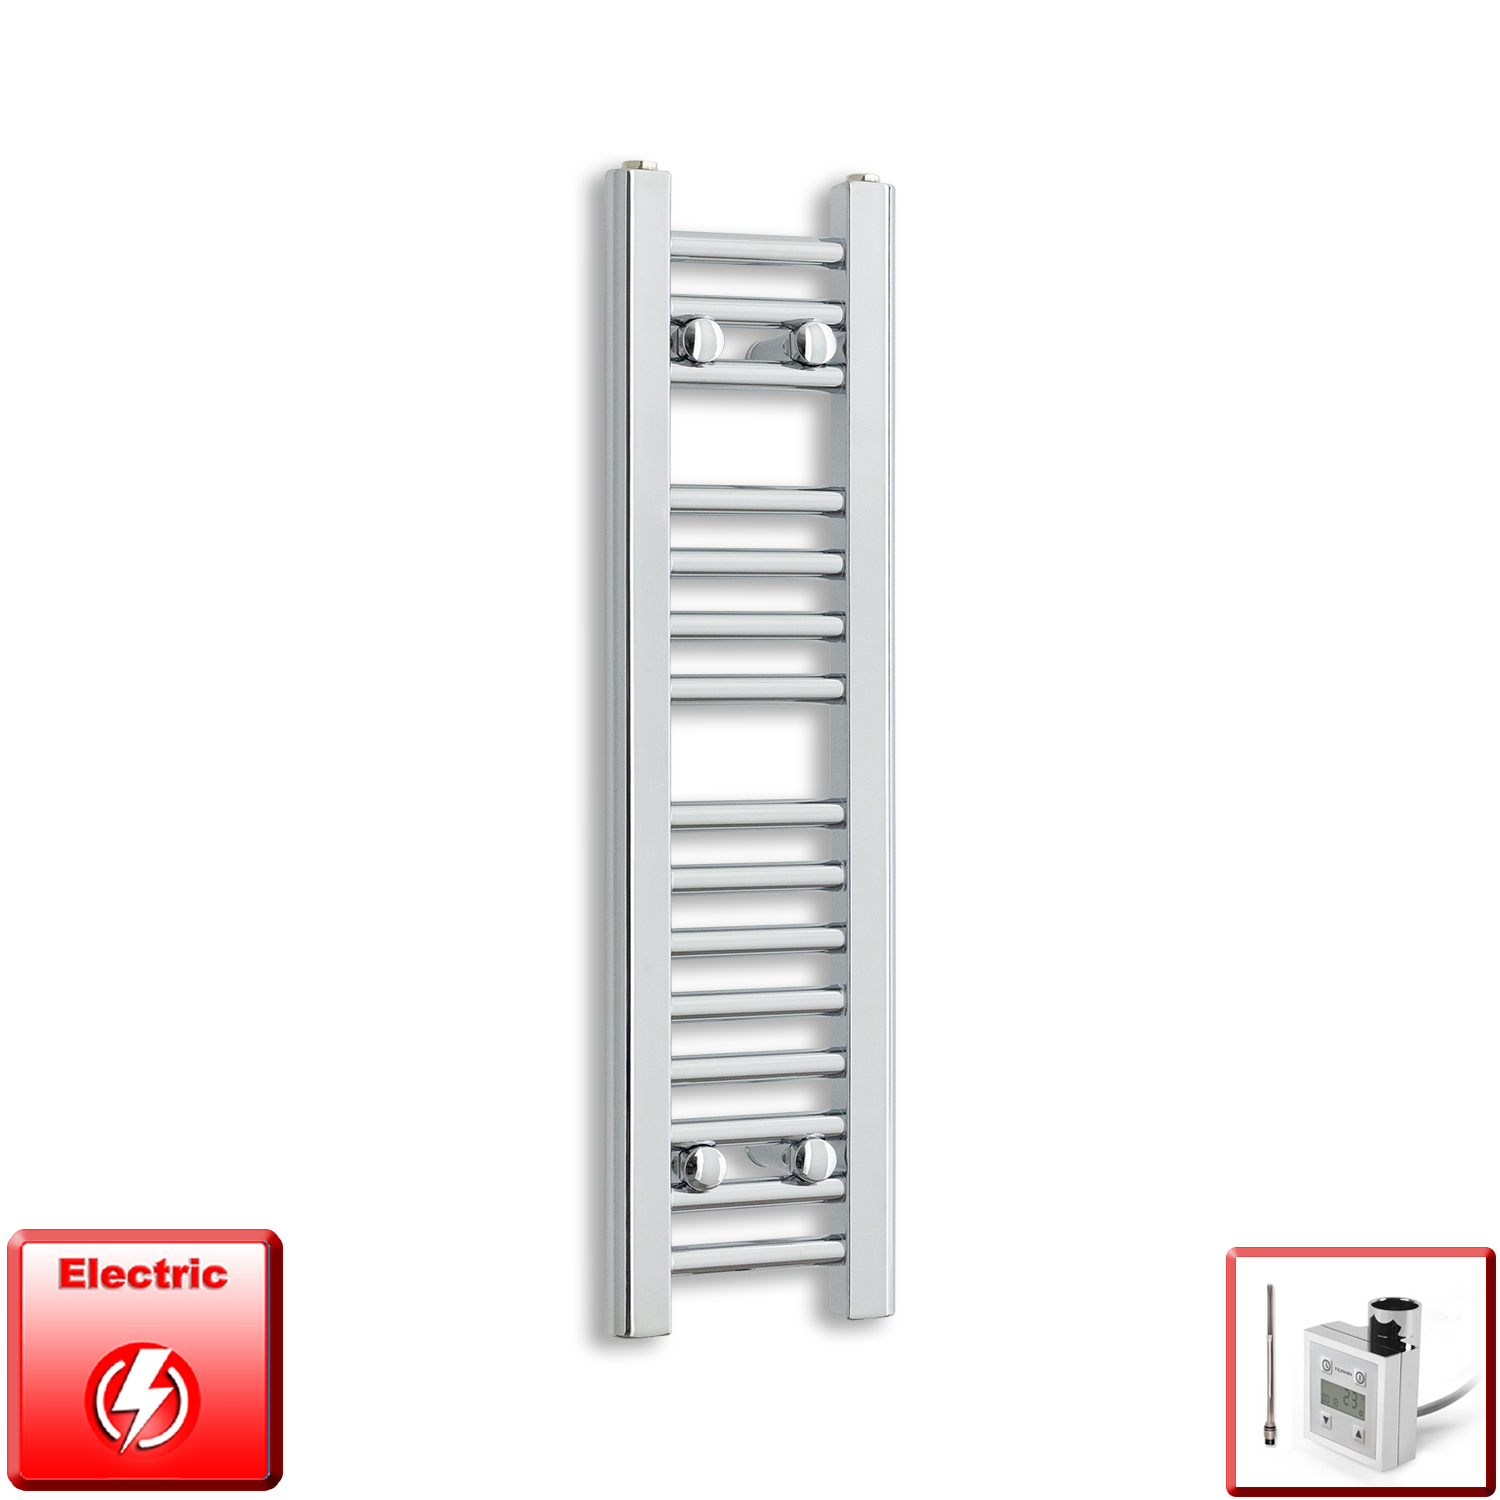 250mm Wide 800mm High Pre-Filled Chrome Electric Towel Rail Radiator With Thermostatic KTX3 Element